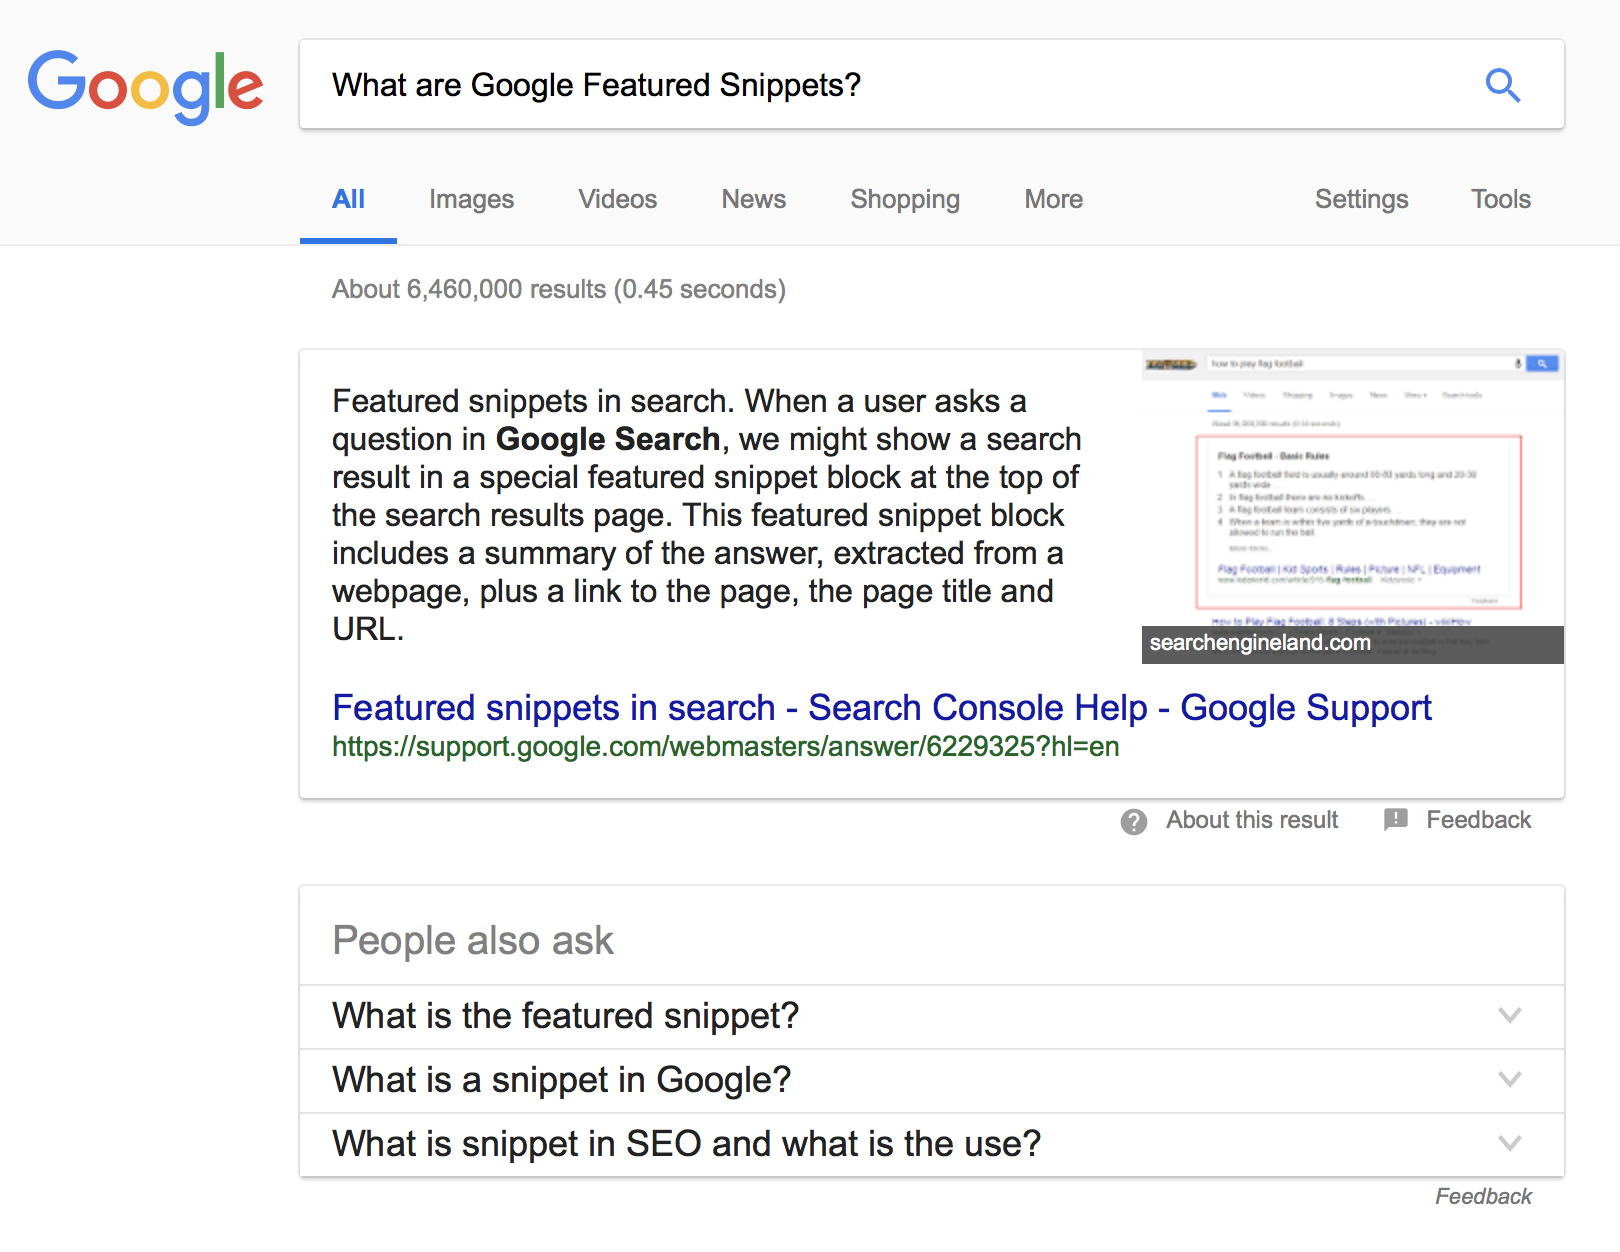 What are Google Featured Snippets?